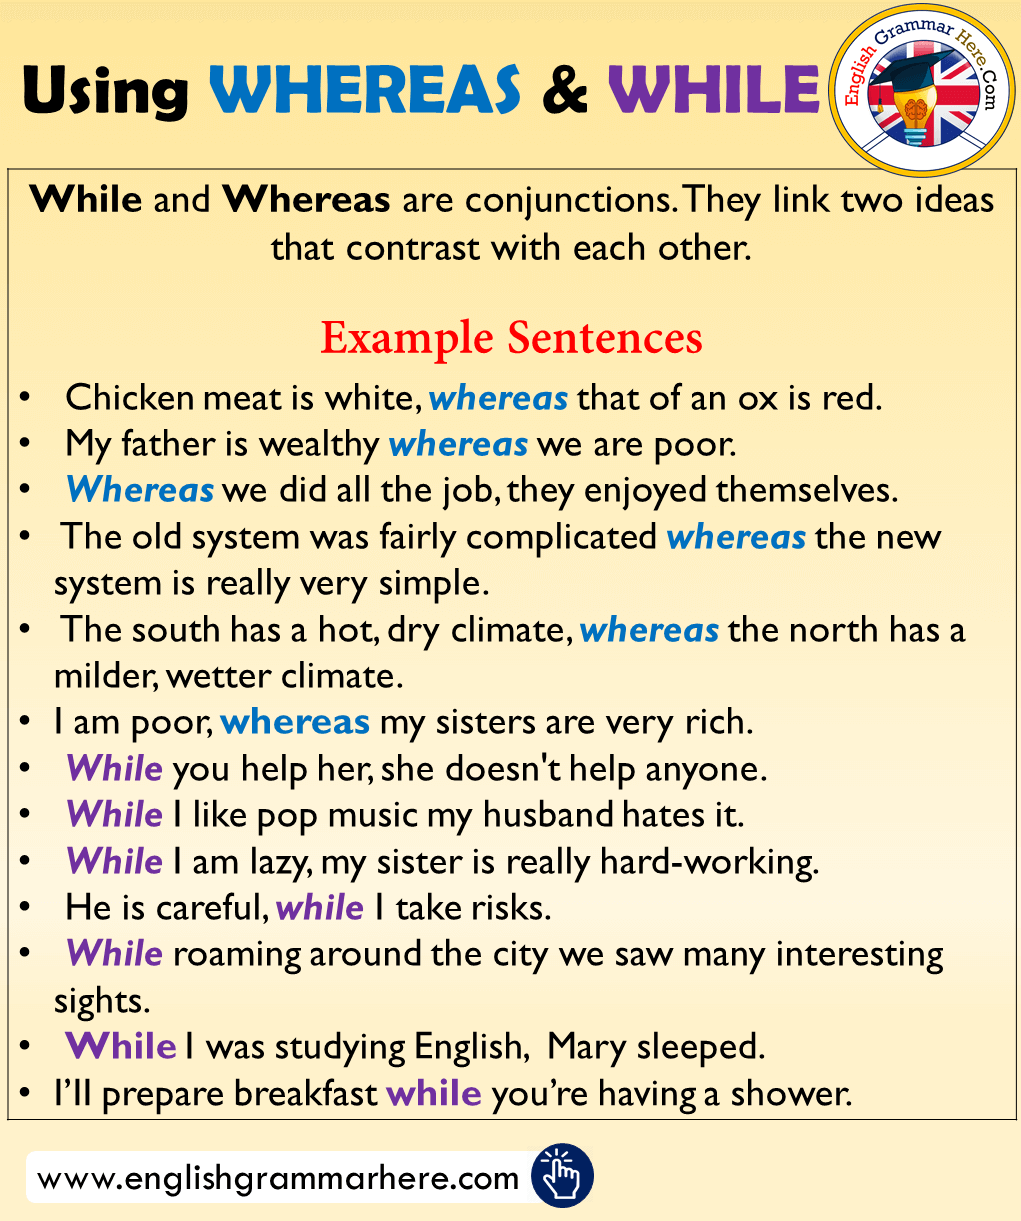 Using Wherea While Example Sentence Learn English Word Grammar Paraphrase Each Of The Following In Two Ways